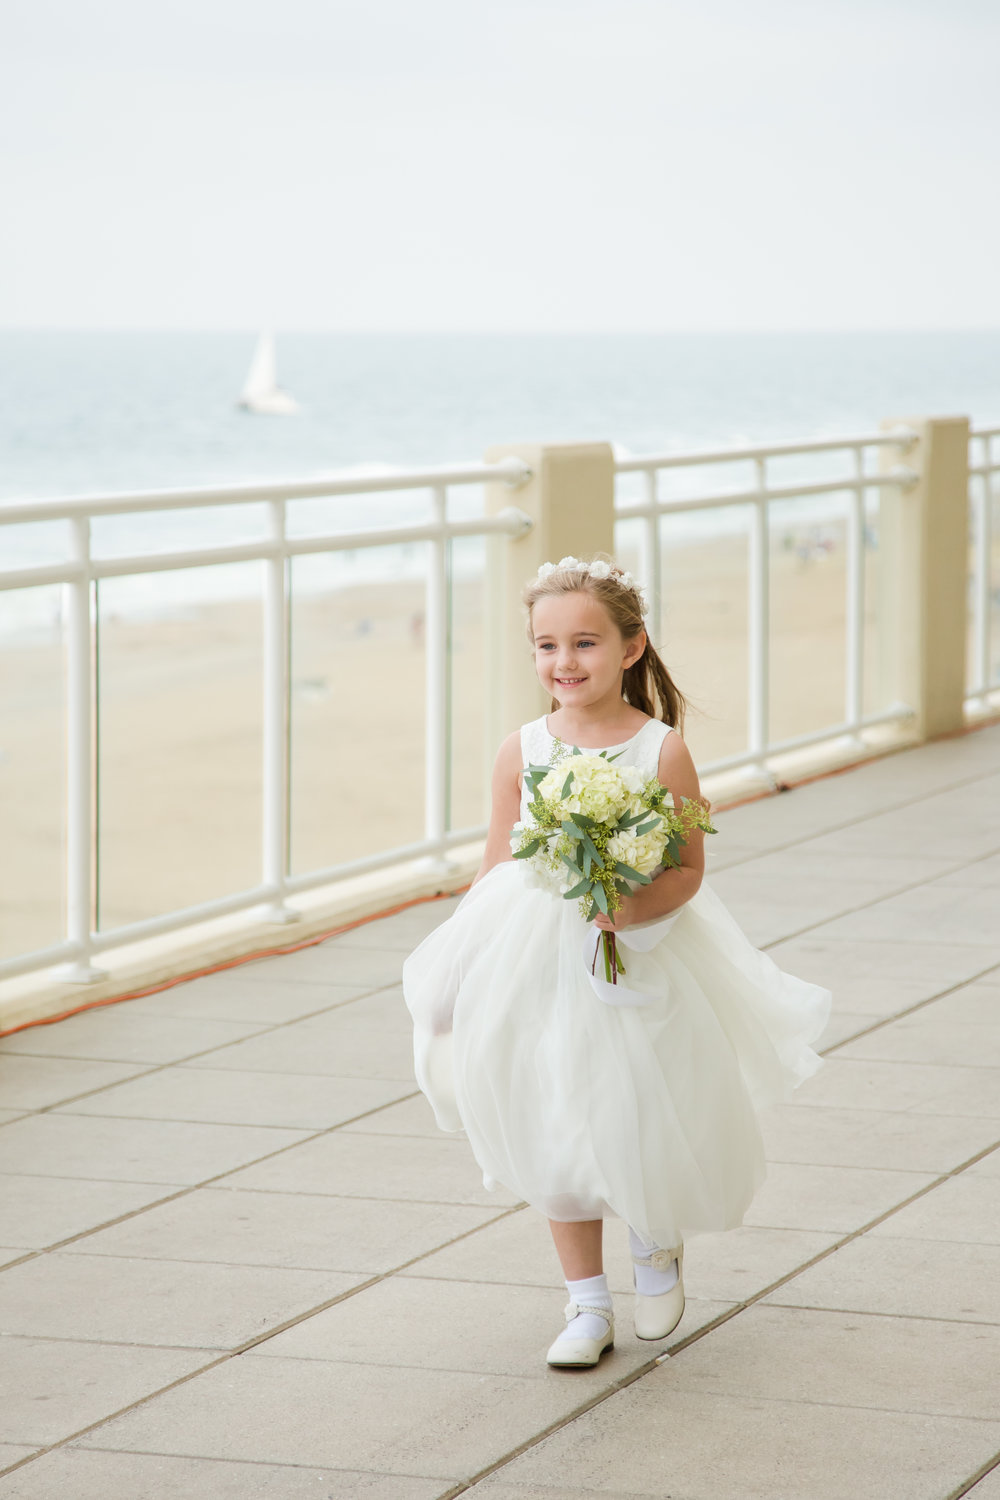 Downing_wedding_RachaelReidPhotography_-310.jpg